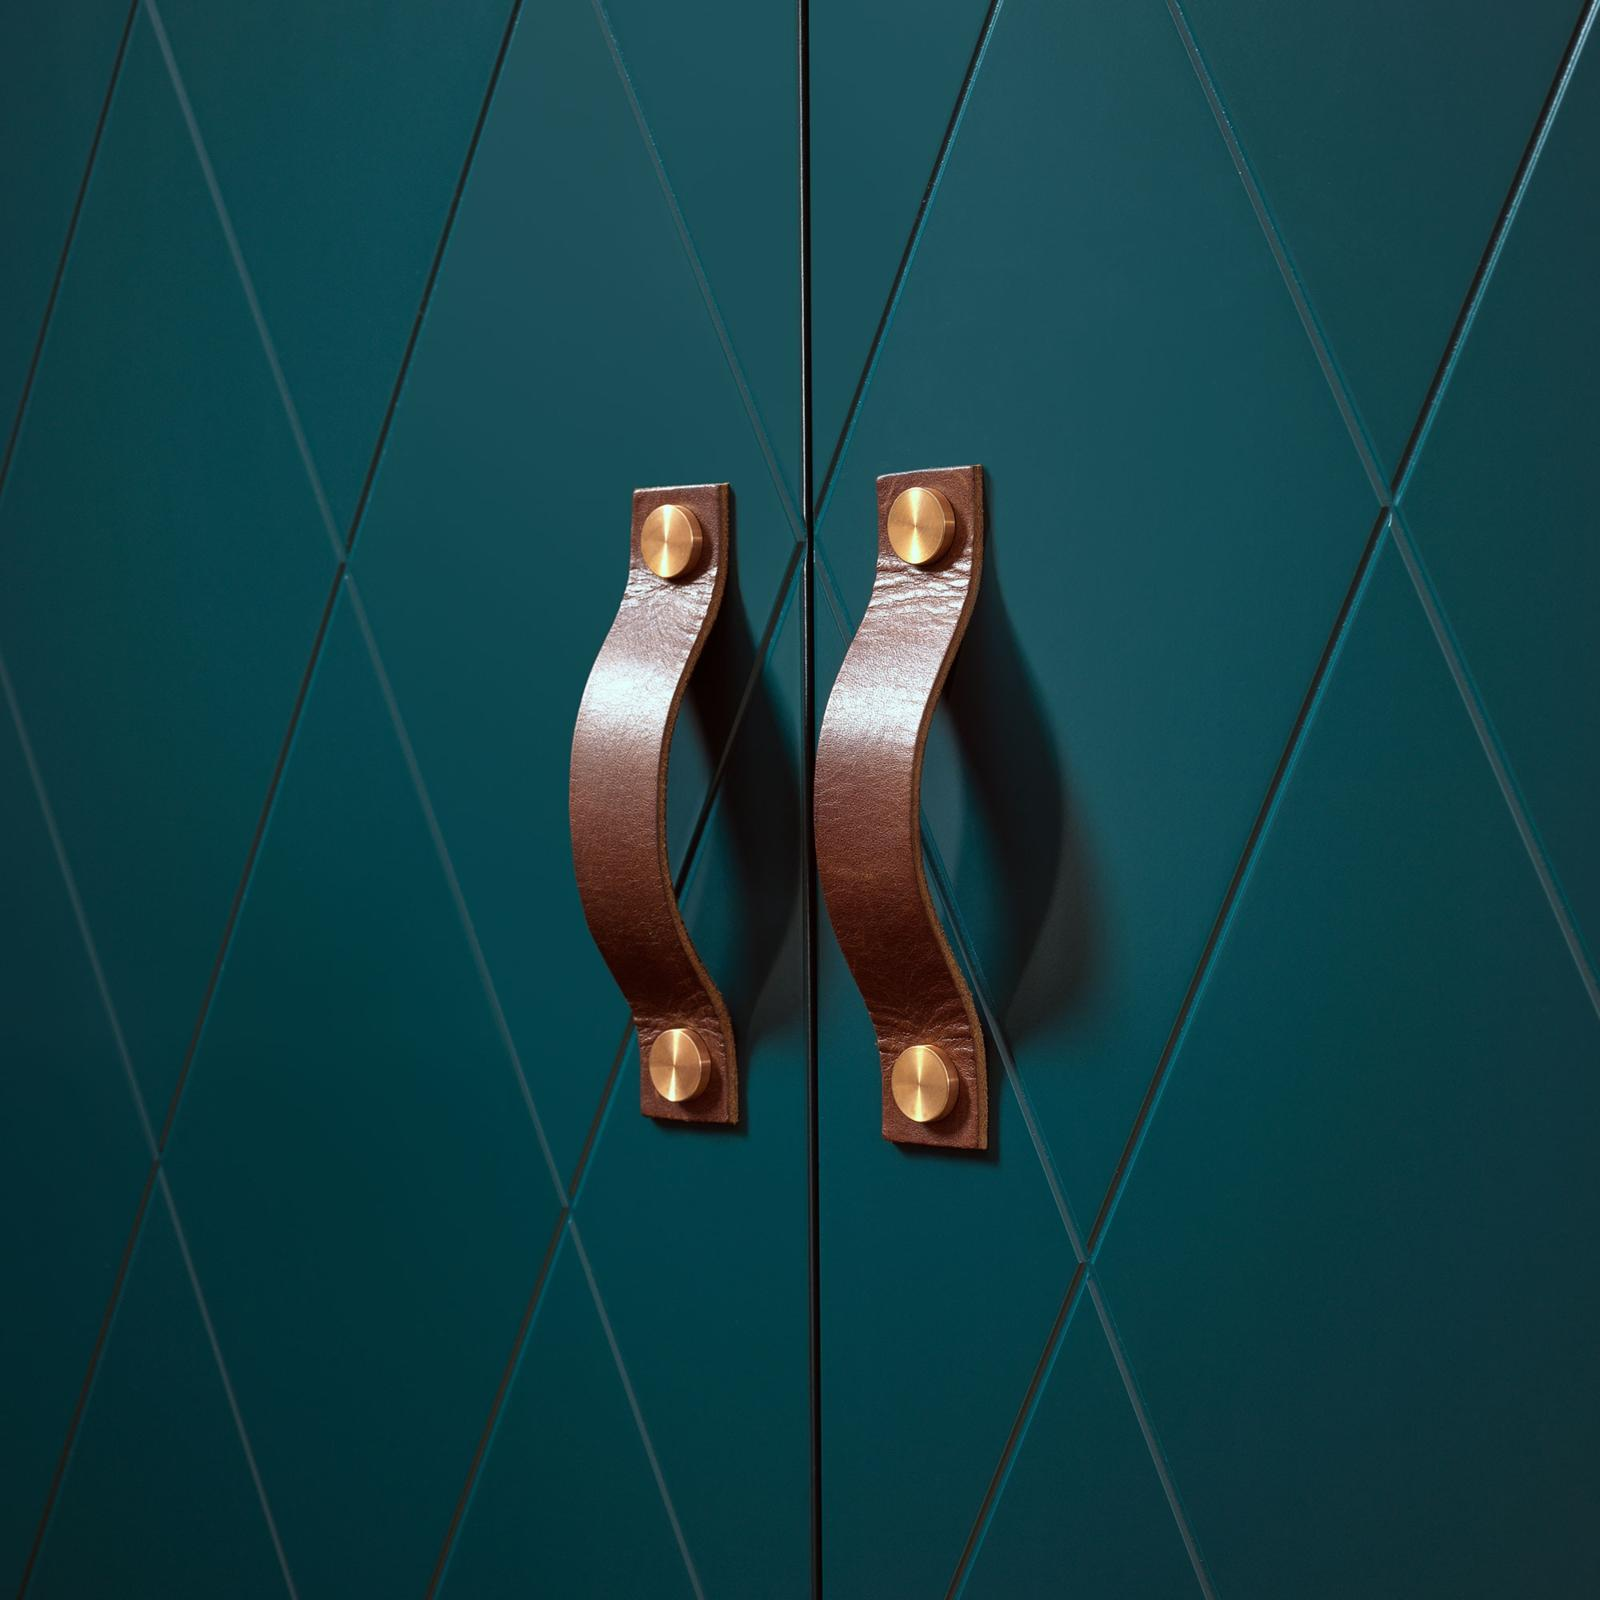 Brown leather handles from Superfront, mounted on bottle green wardrobe fronts